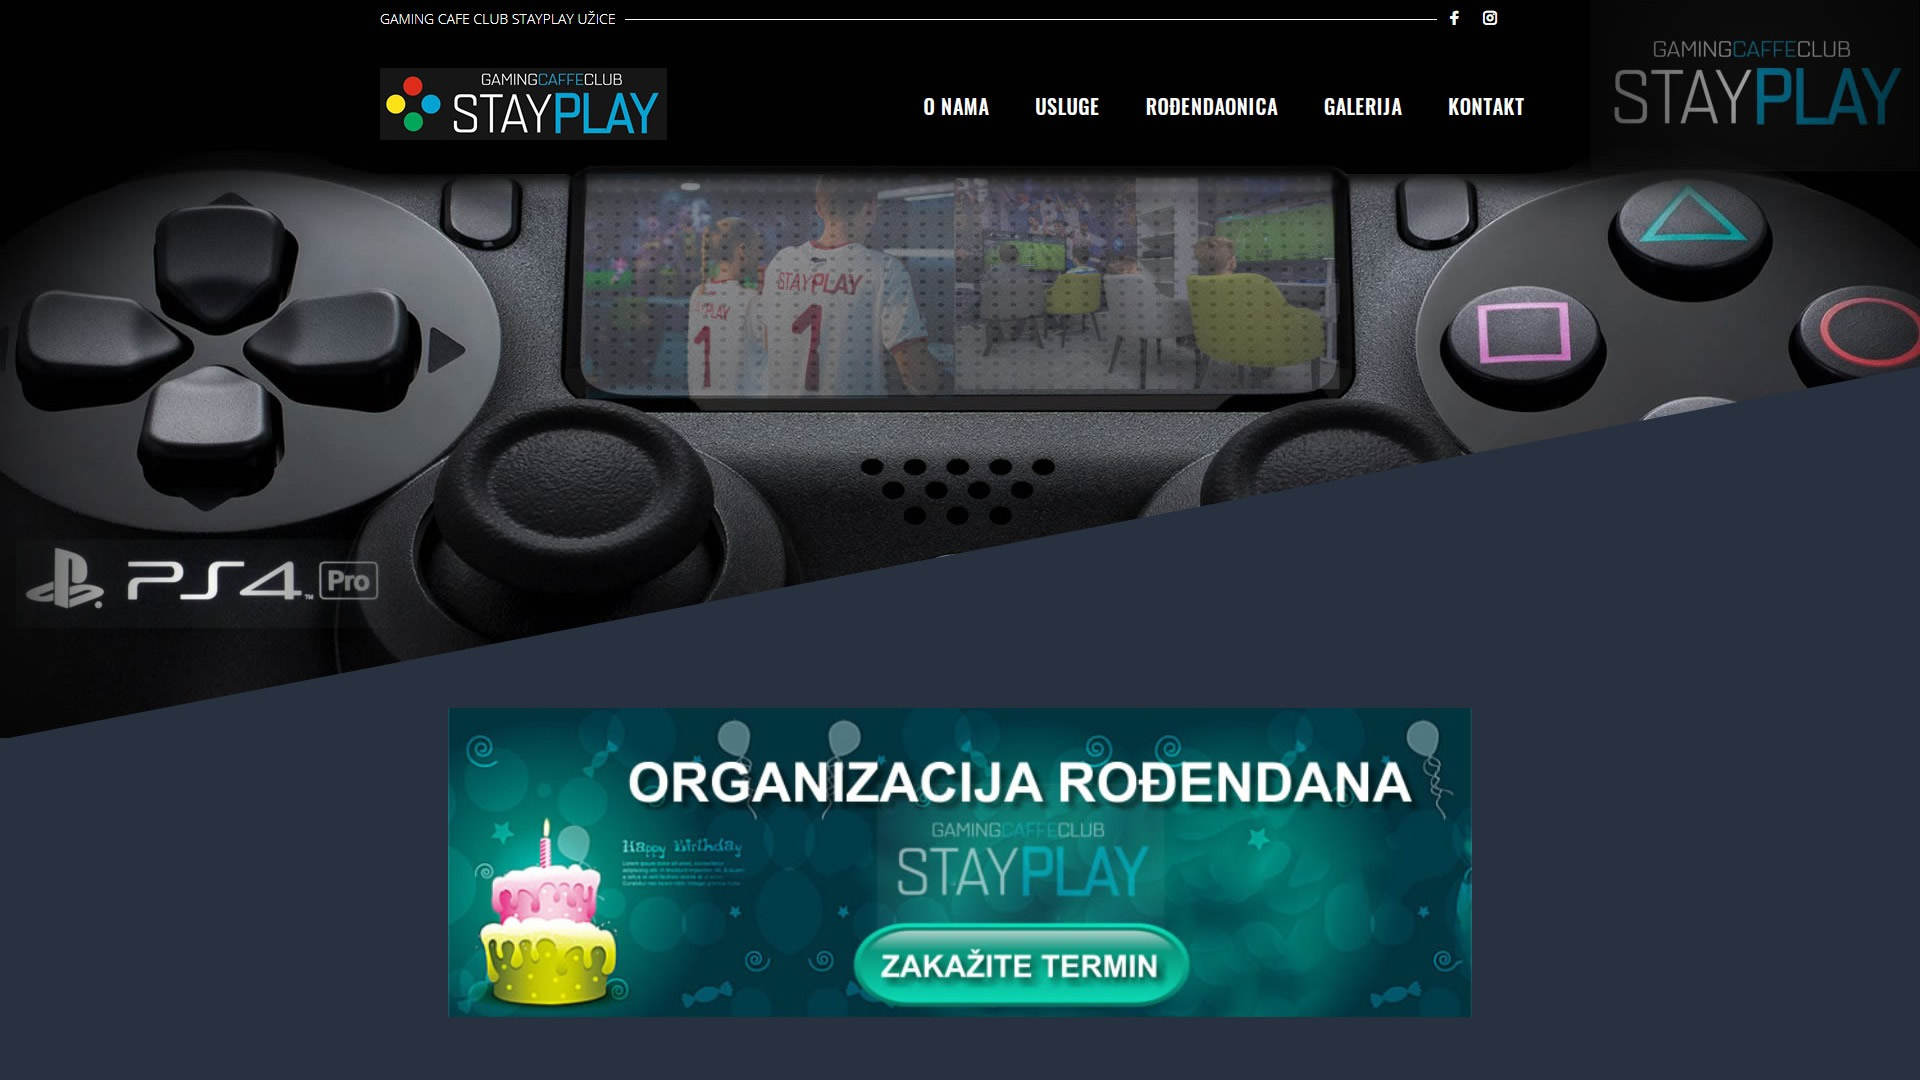 STAY PLAY